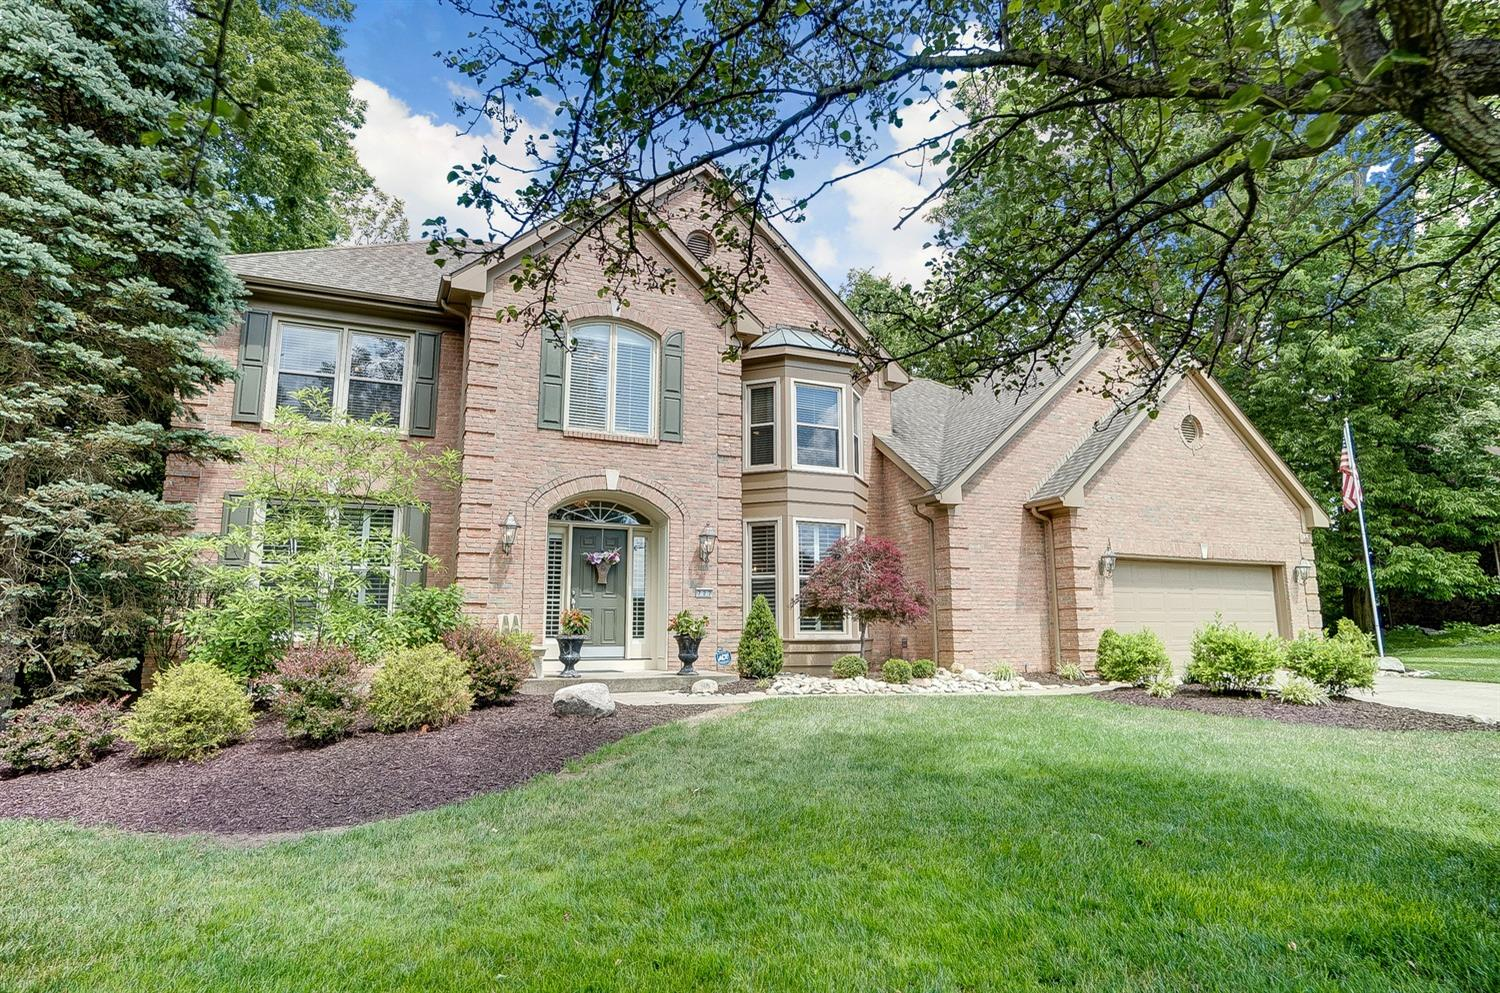 727 Miami Heights Ct Miami Twp. (East), OH